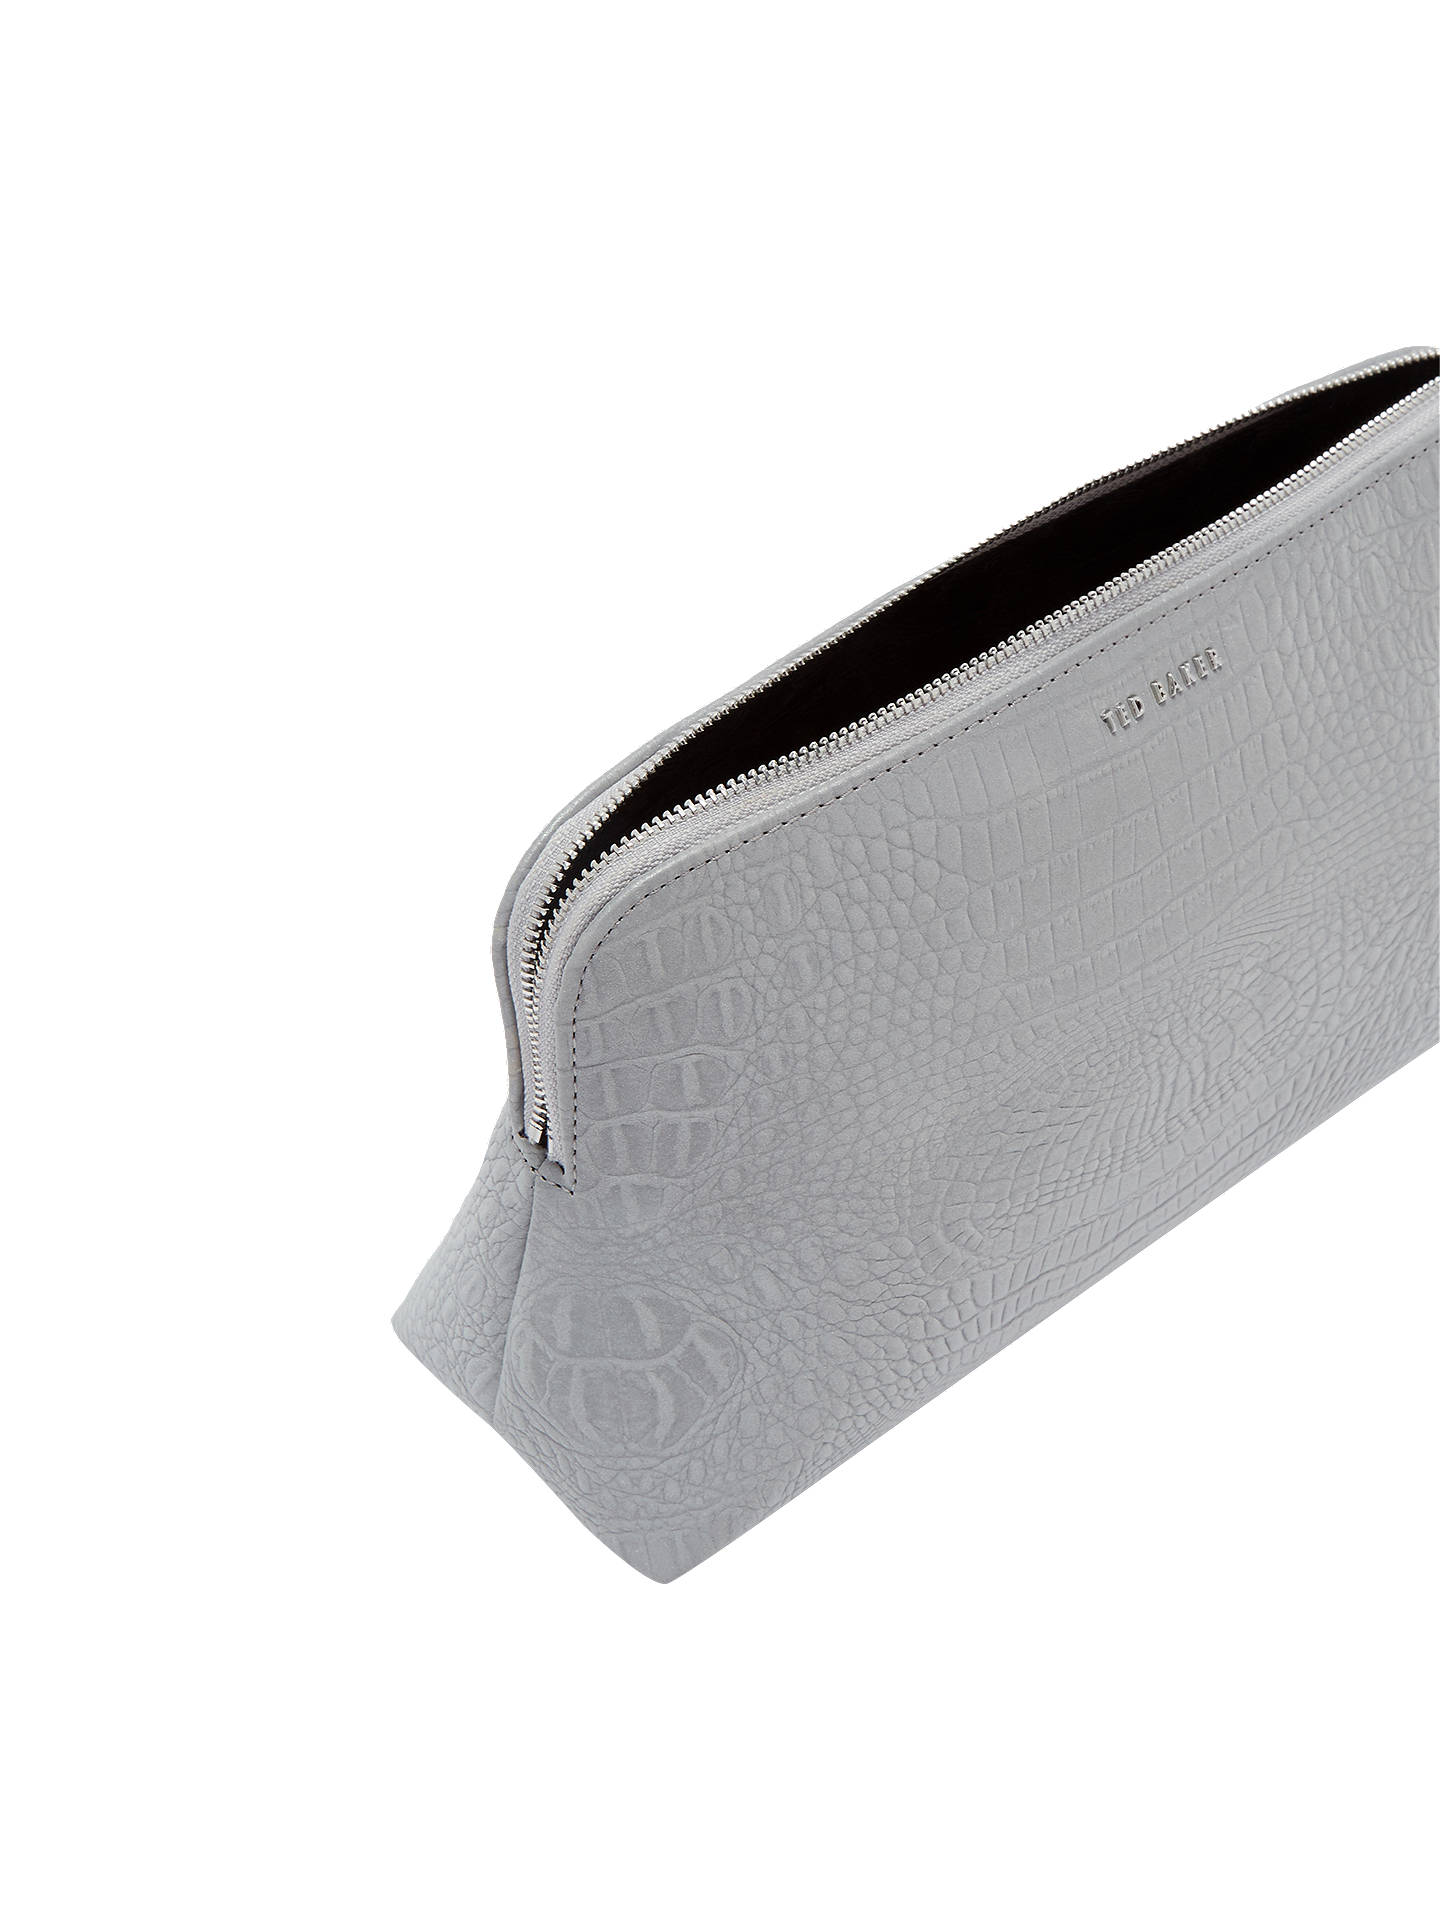 BuyTed Baker Tawny Croc Effect Wash Bag, Silver Online at johnlewis.com